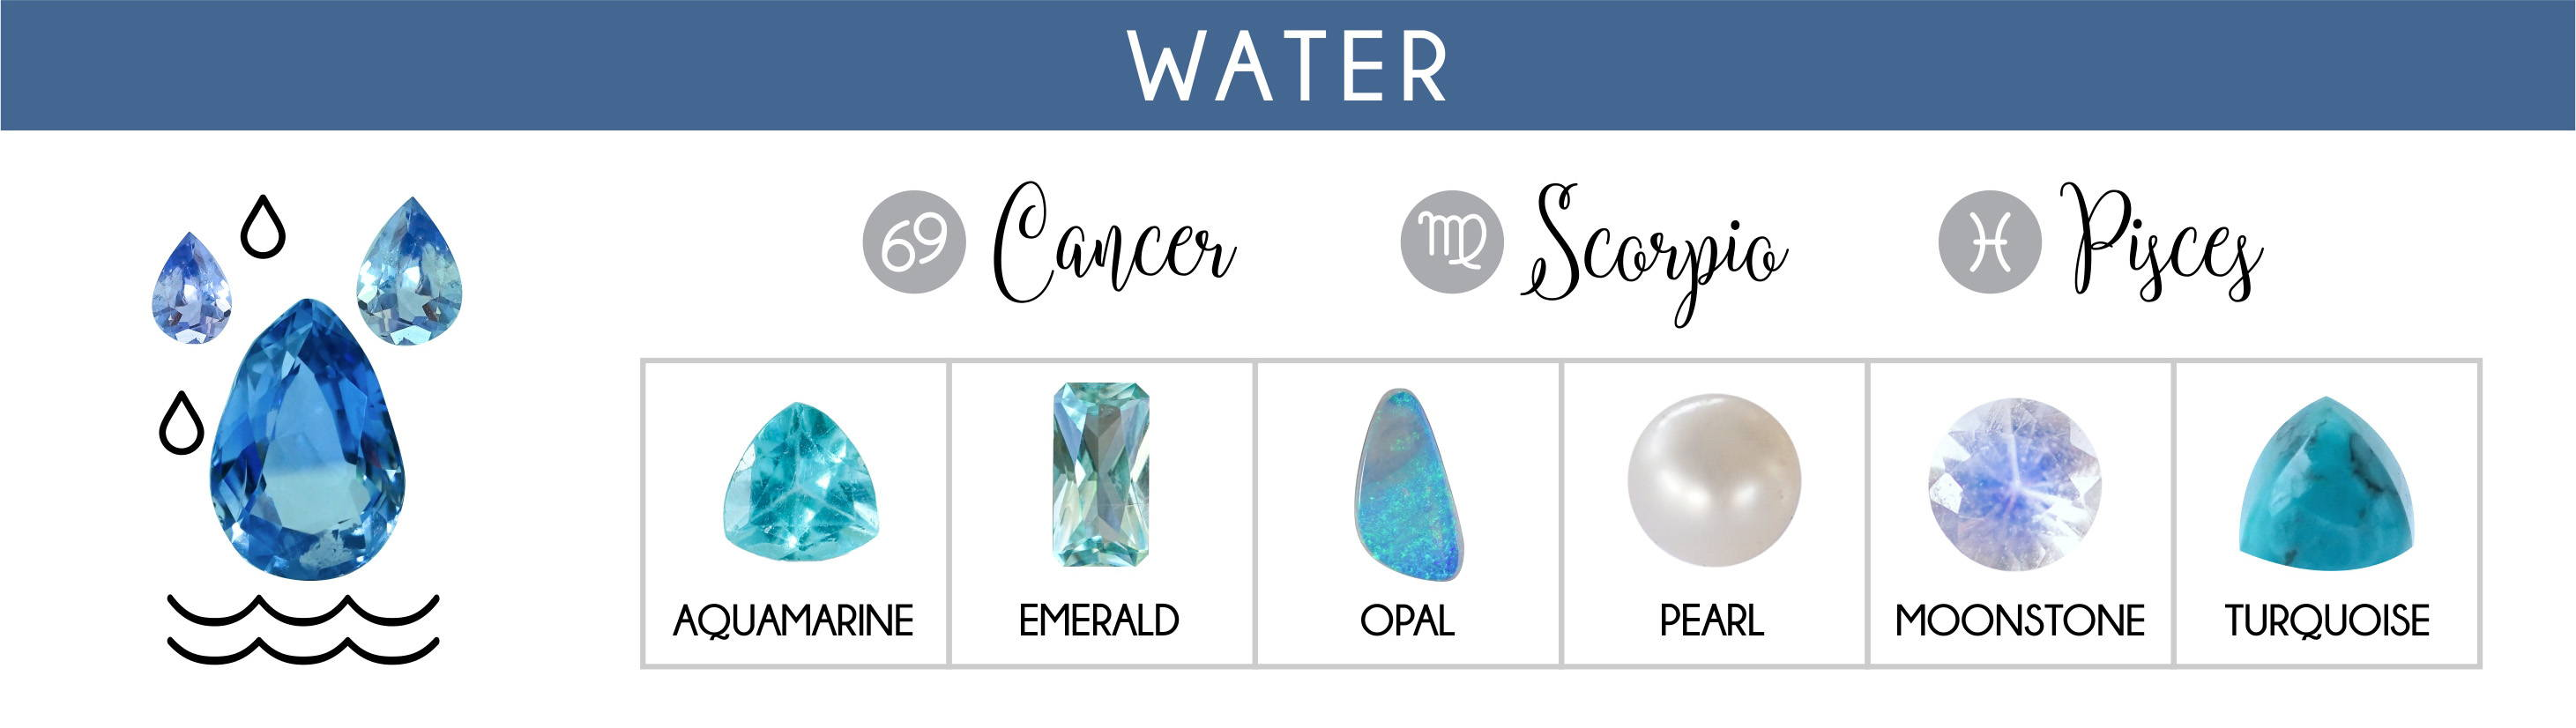 Water element zodiacs: Cancer, Scorpio, and Pisces